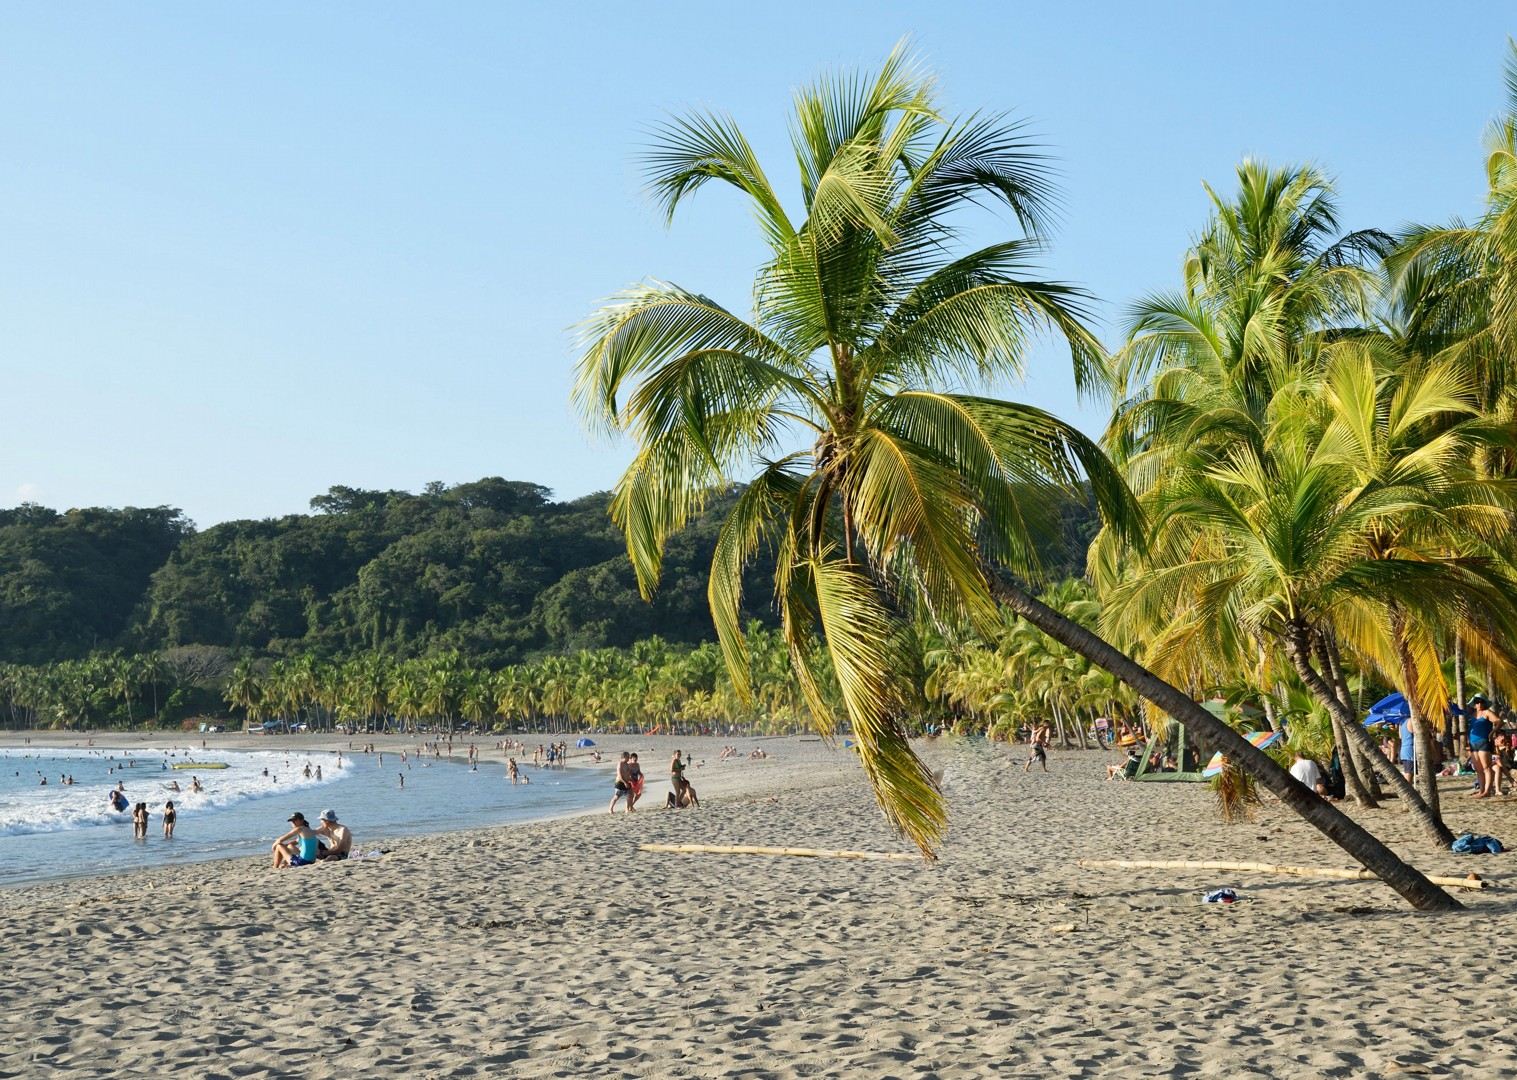 costa-rica-beaches-family-cycling-holiday.jpg - Costa Rica - Volcanoes and Valleys - Guided Family Cycling Holiday - Family Cycling